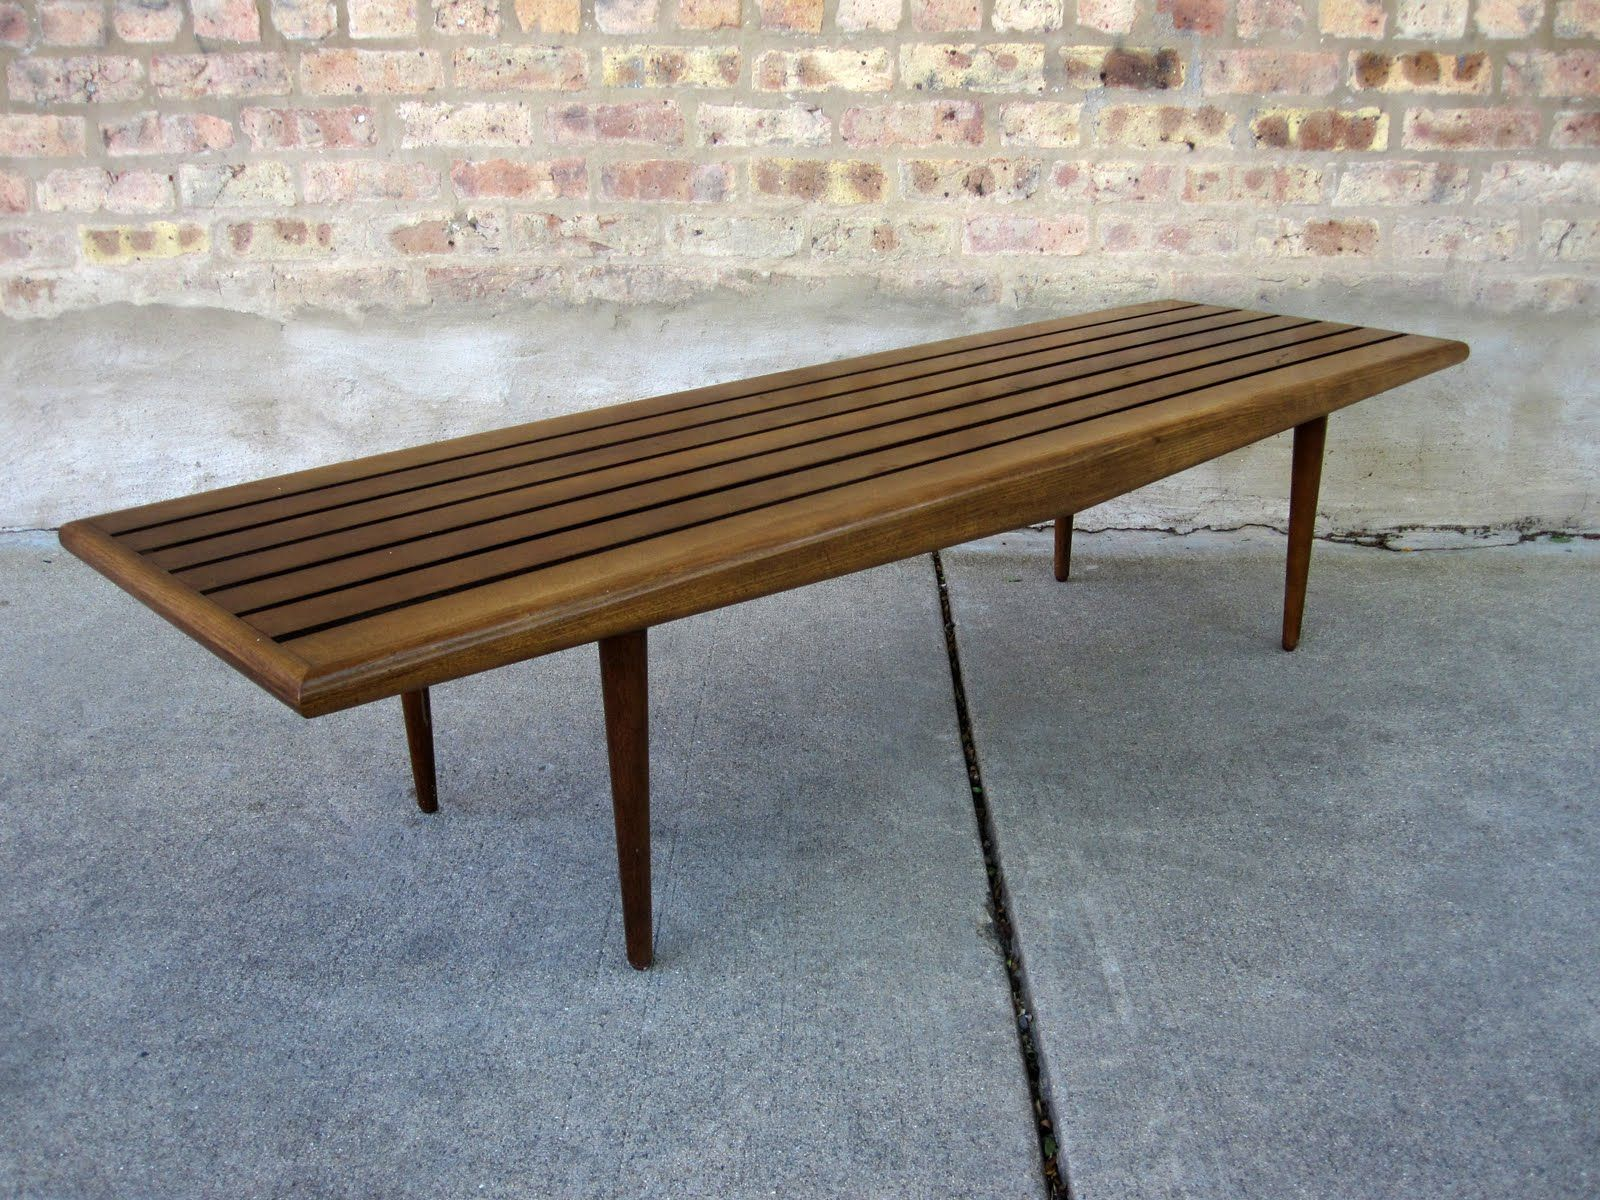 Circa Midcentury: U0027danish Modernu0027 Slat Bench / Coffee Table (want For My  Home One Day)